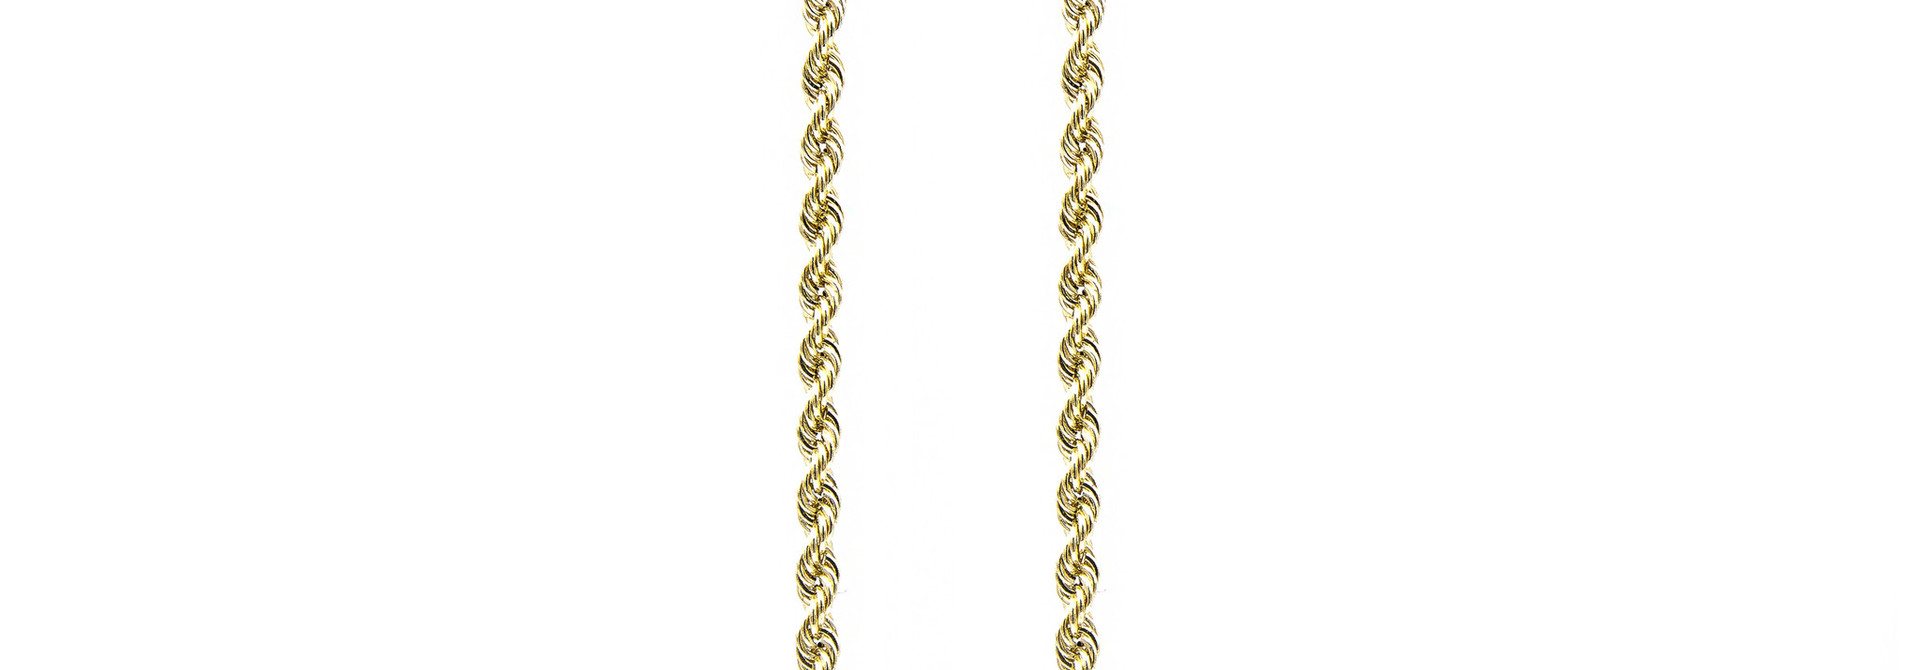 Rope Chain 18k-3.5 mm